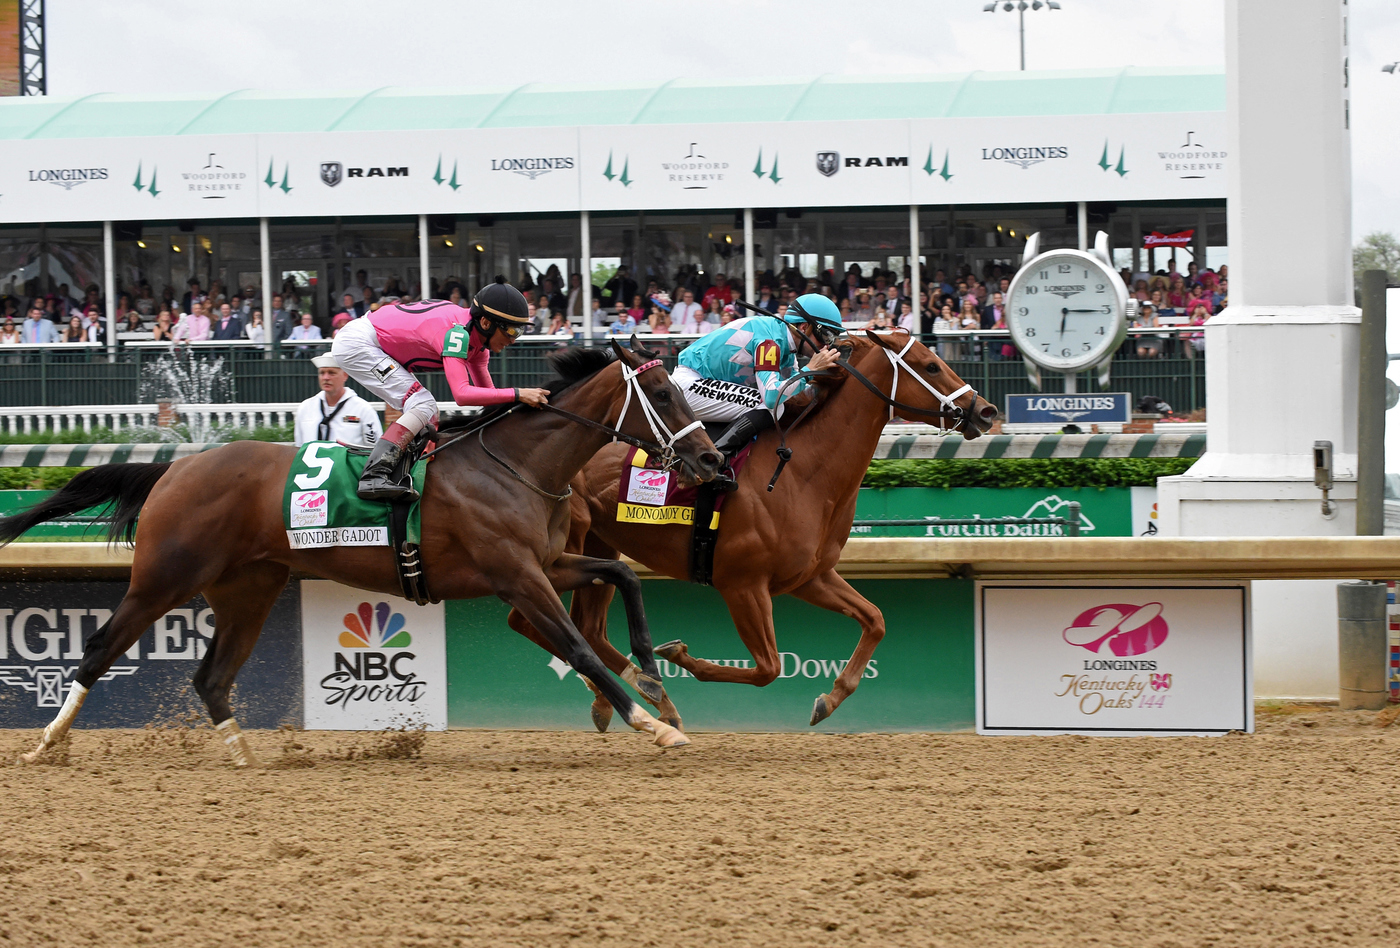 Longines Flat Racing Event: Monomoy Girl's Longines Kentucky Oaks Victory celebrated  at Churchill Downs  7